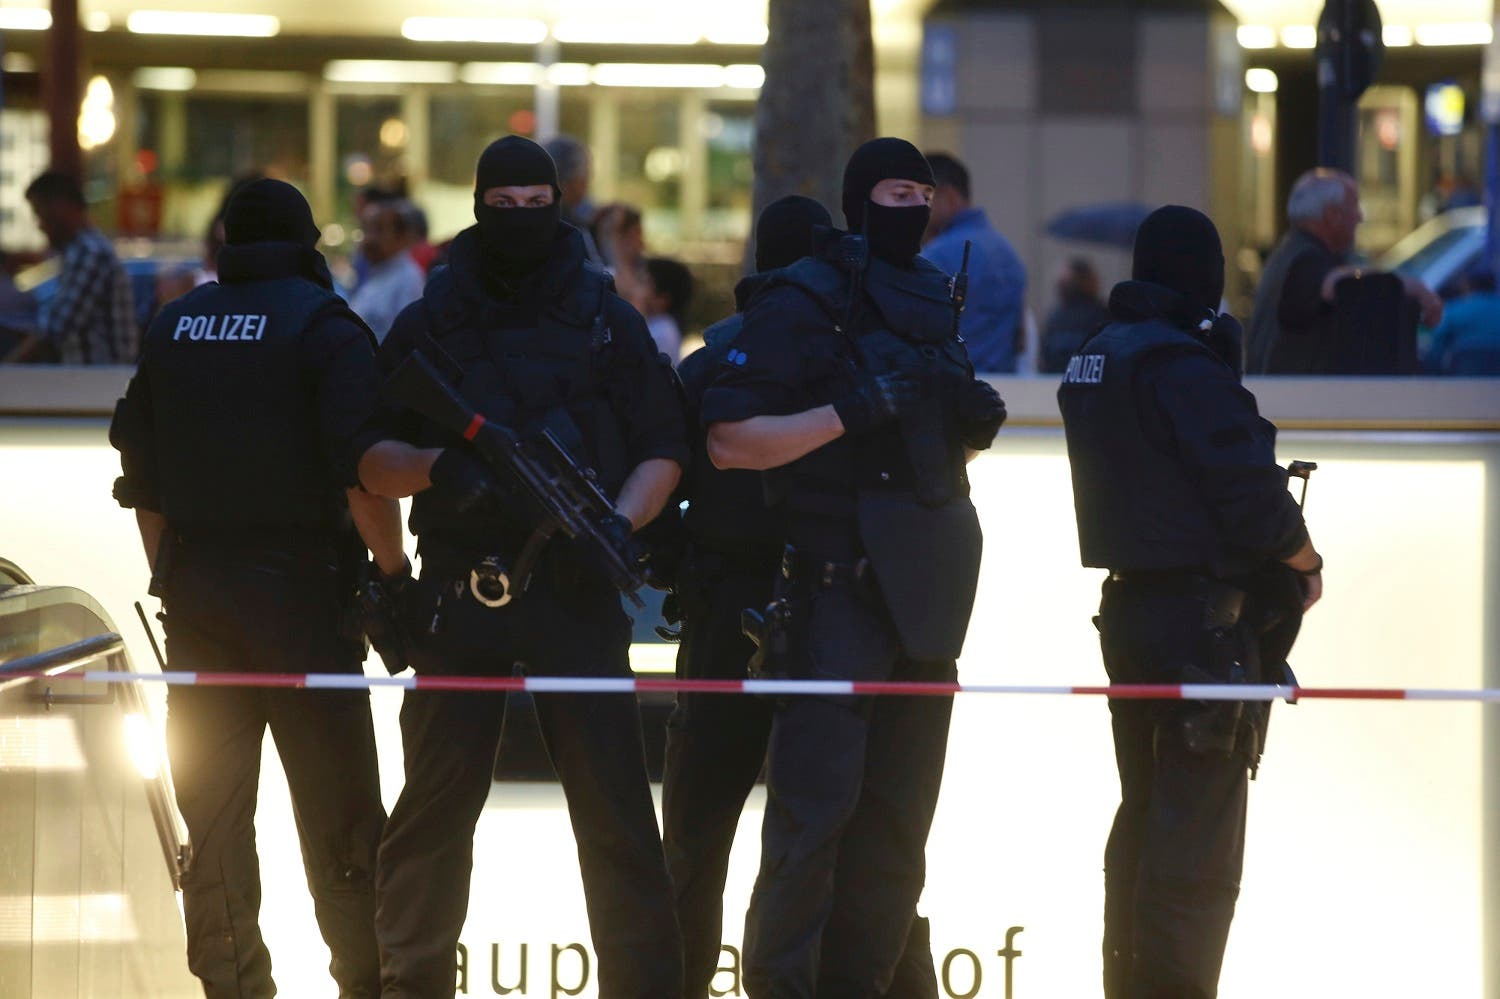 Special forces police officers stand guard at an entrance of the main train station, following a shooting rampage at the Olympia shopping mall in Munich, Germany July 22, 2016. REUTERS